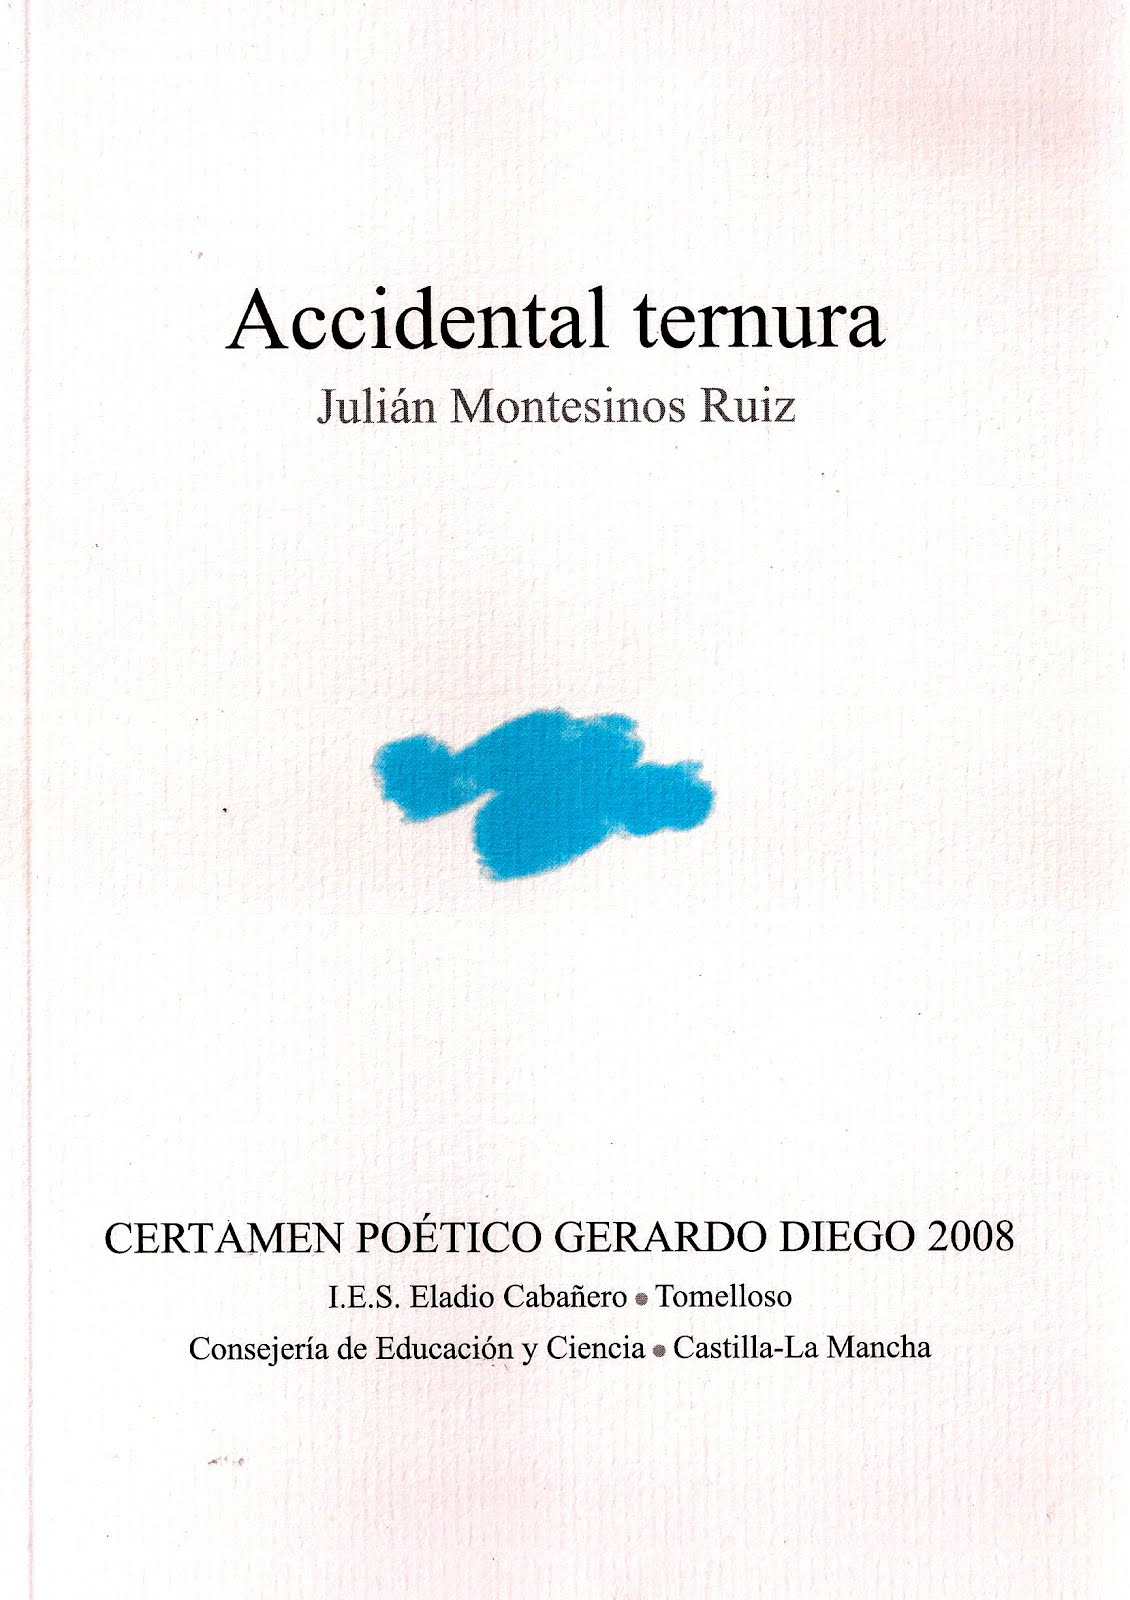 ACCIDENTAL TERNURA (2008)